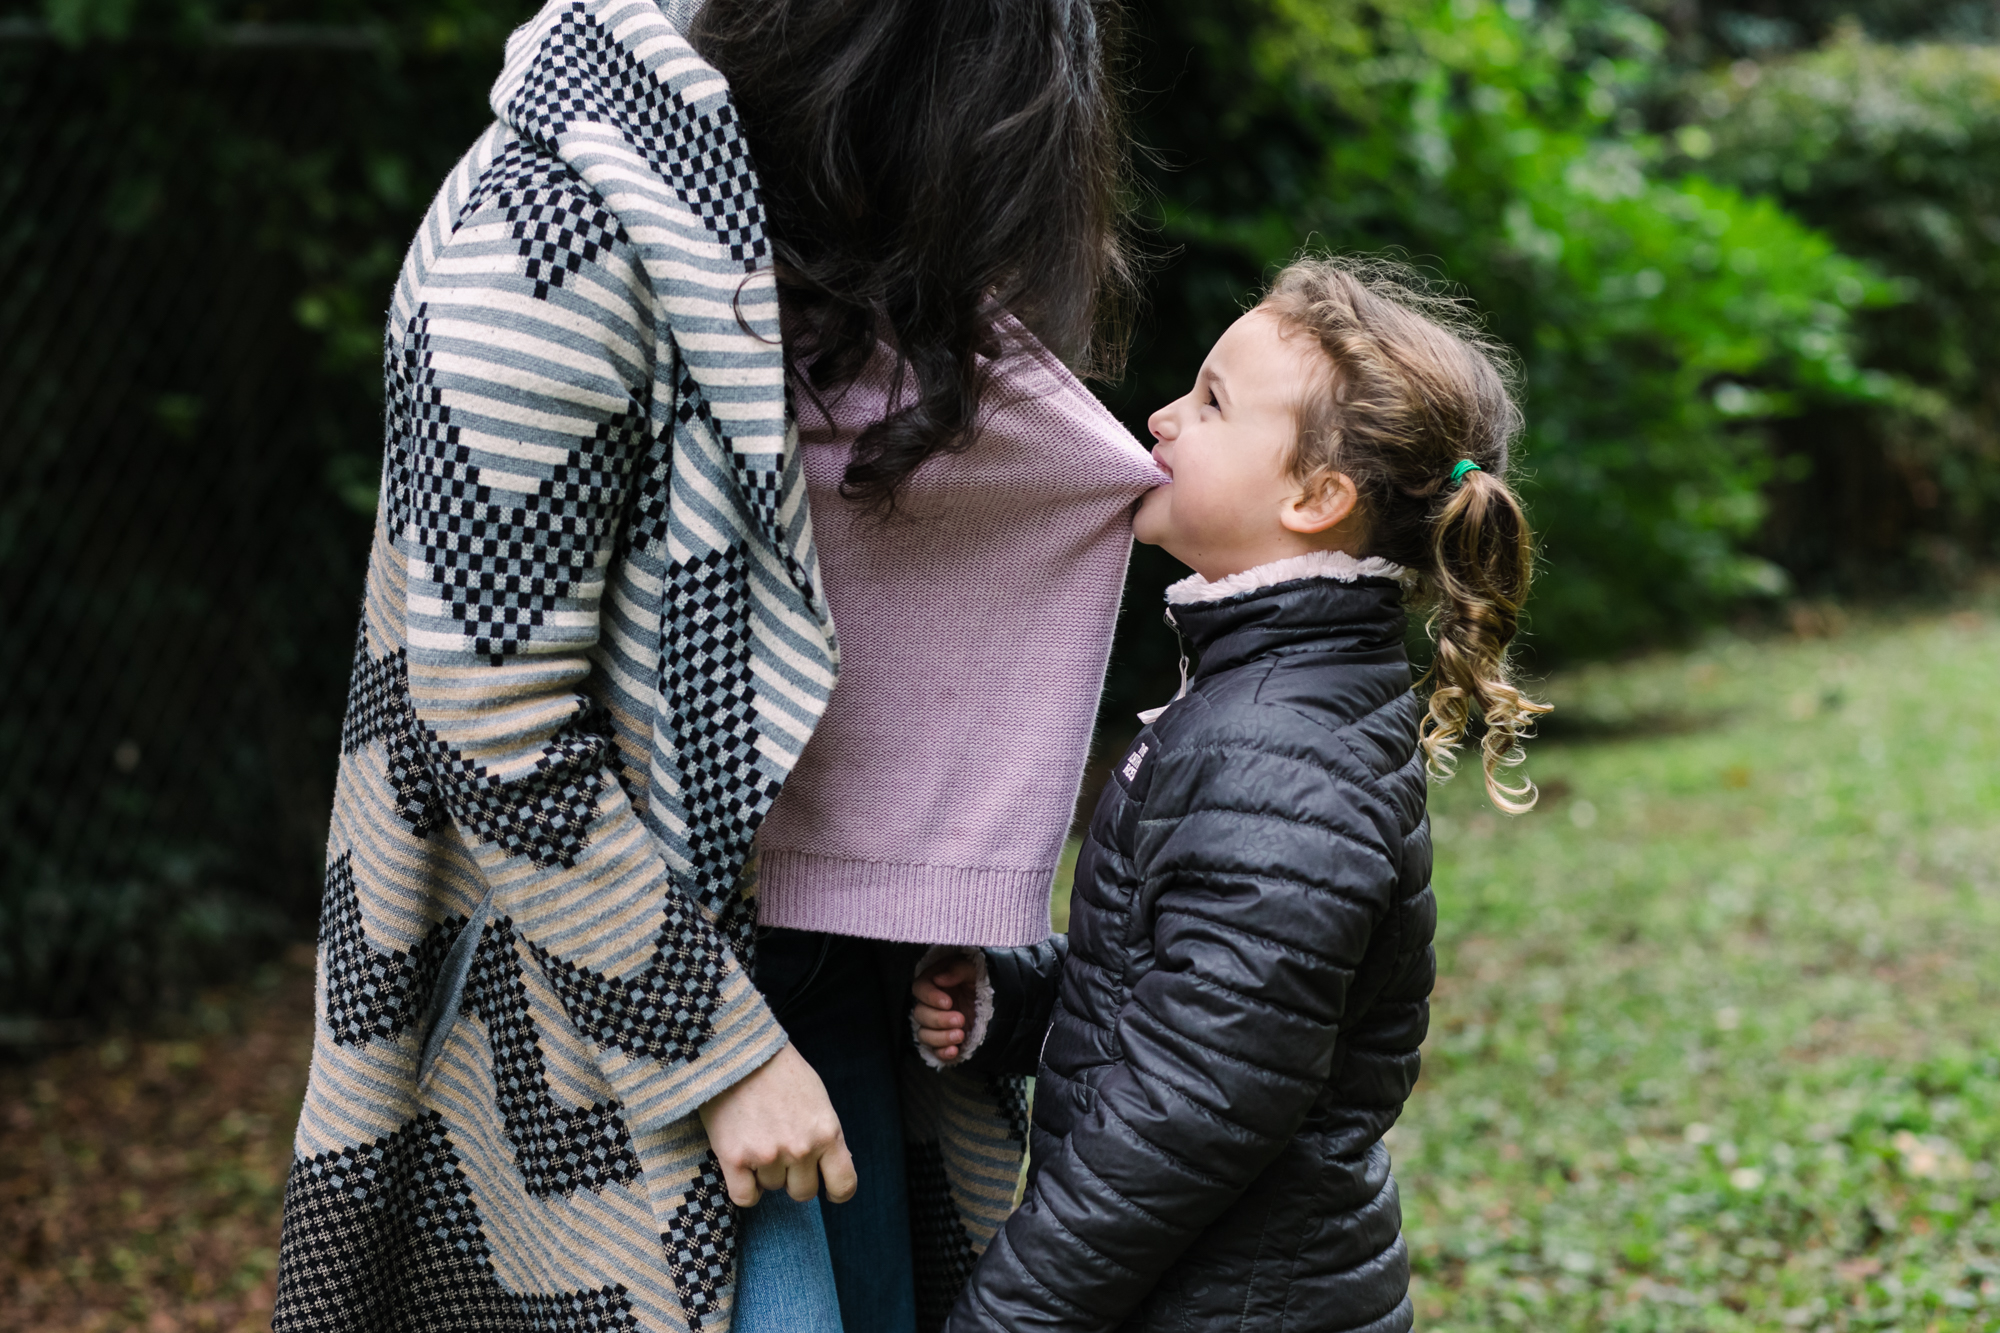 a young girl looks up at her mom as she pulls her shirt with her teeth during a documentary family photography session